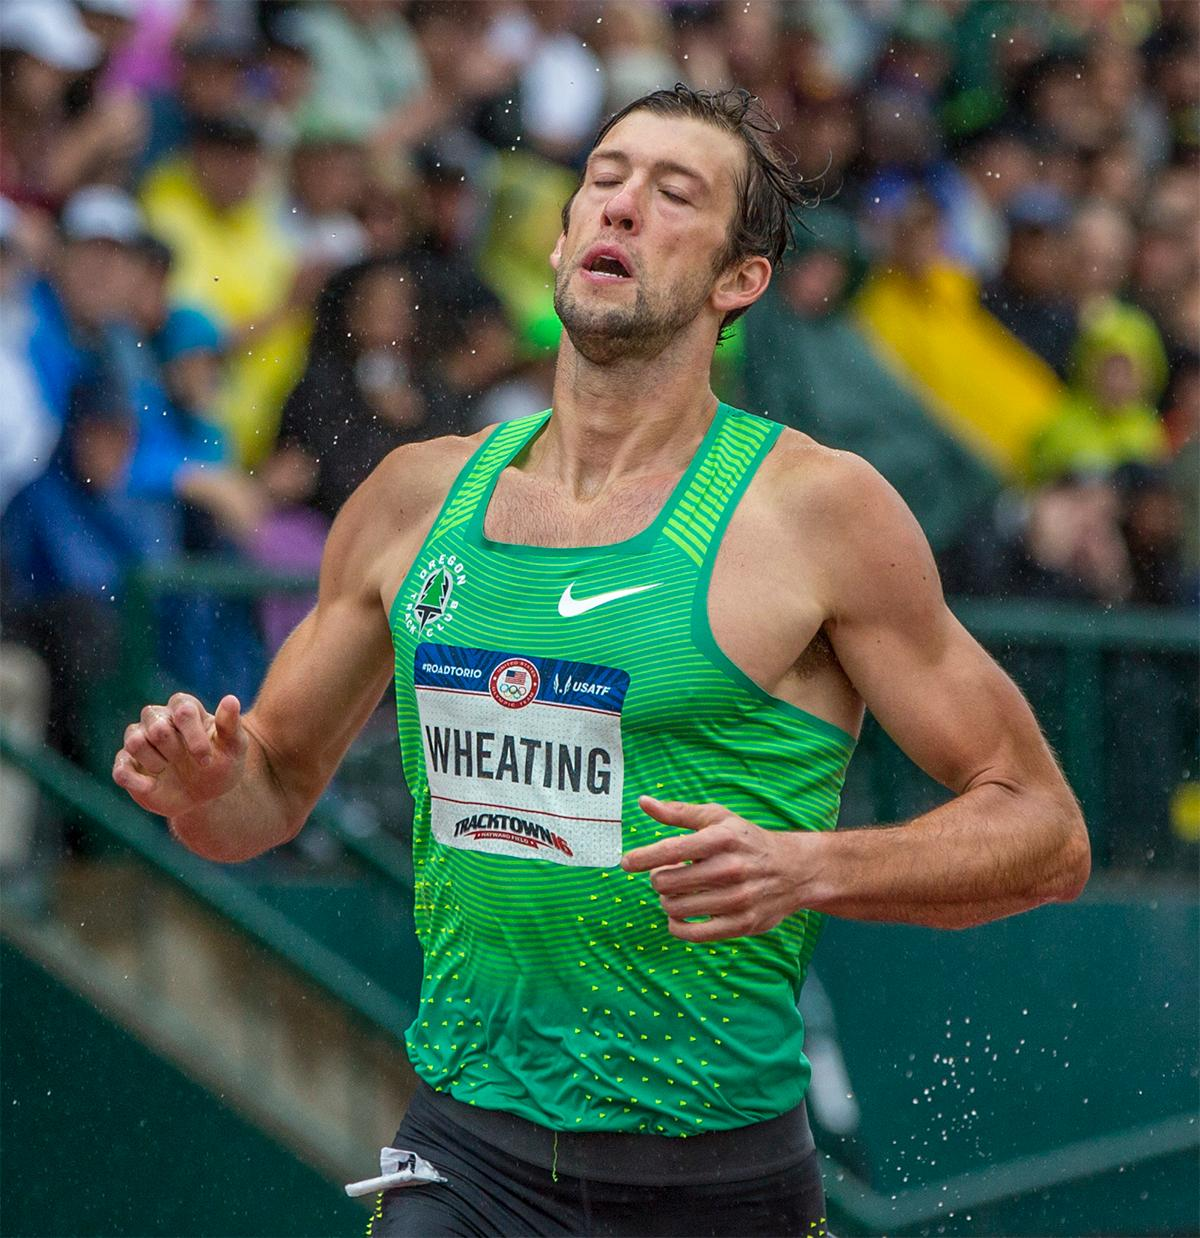 Nike OTC's Andrew Wheating shows the wear on his face as he finishes the 1,500 amidst a downpour. Wheating finished sixth overall with a time of 3:44.73 and qualified for the finals. Photo by August Frank, Oregon News Lab